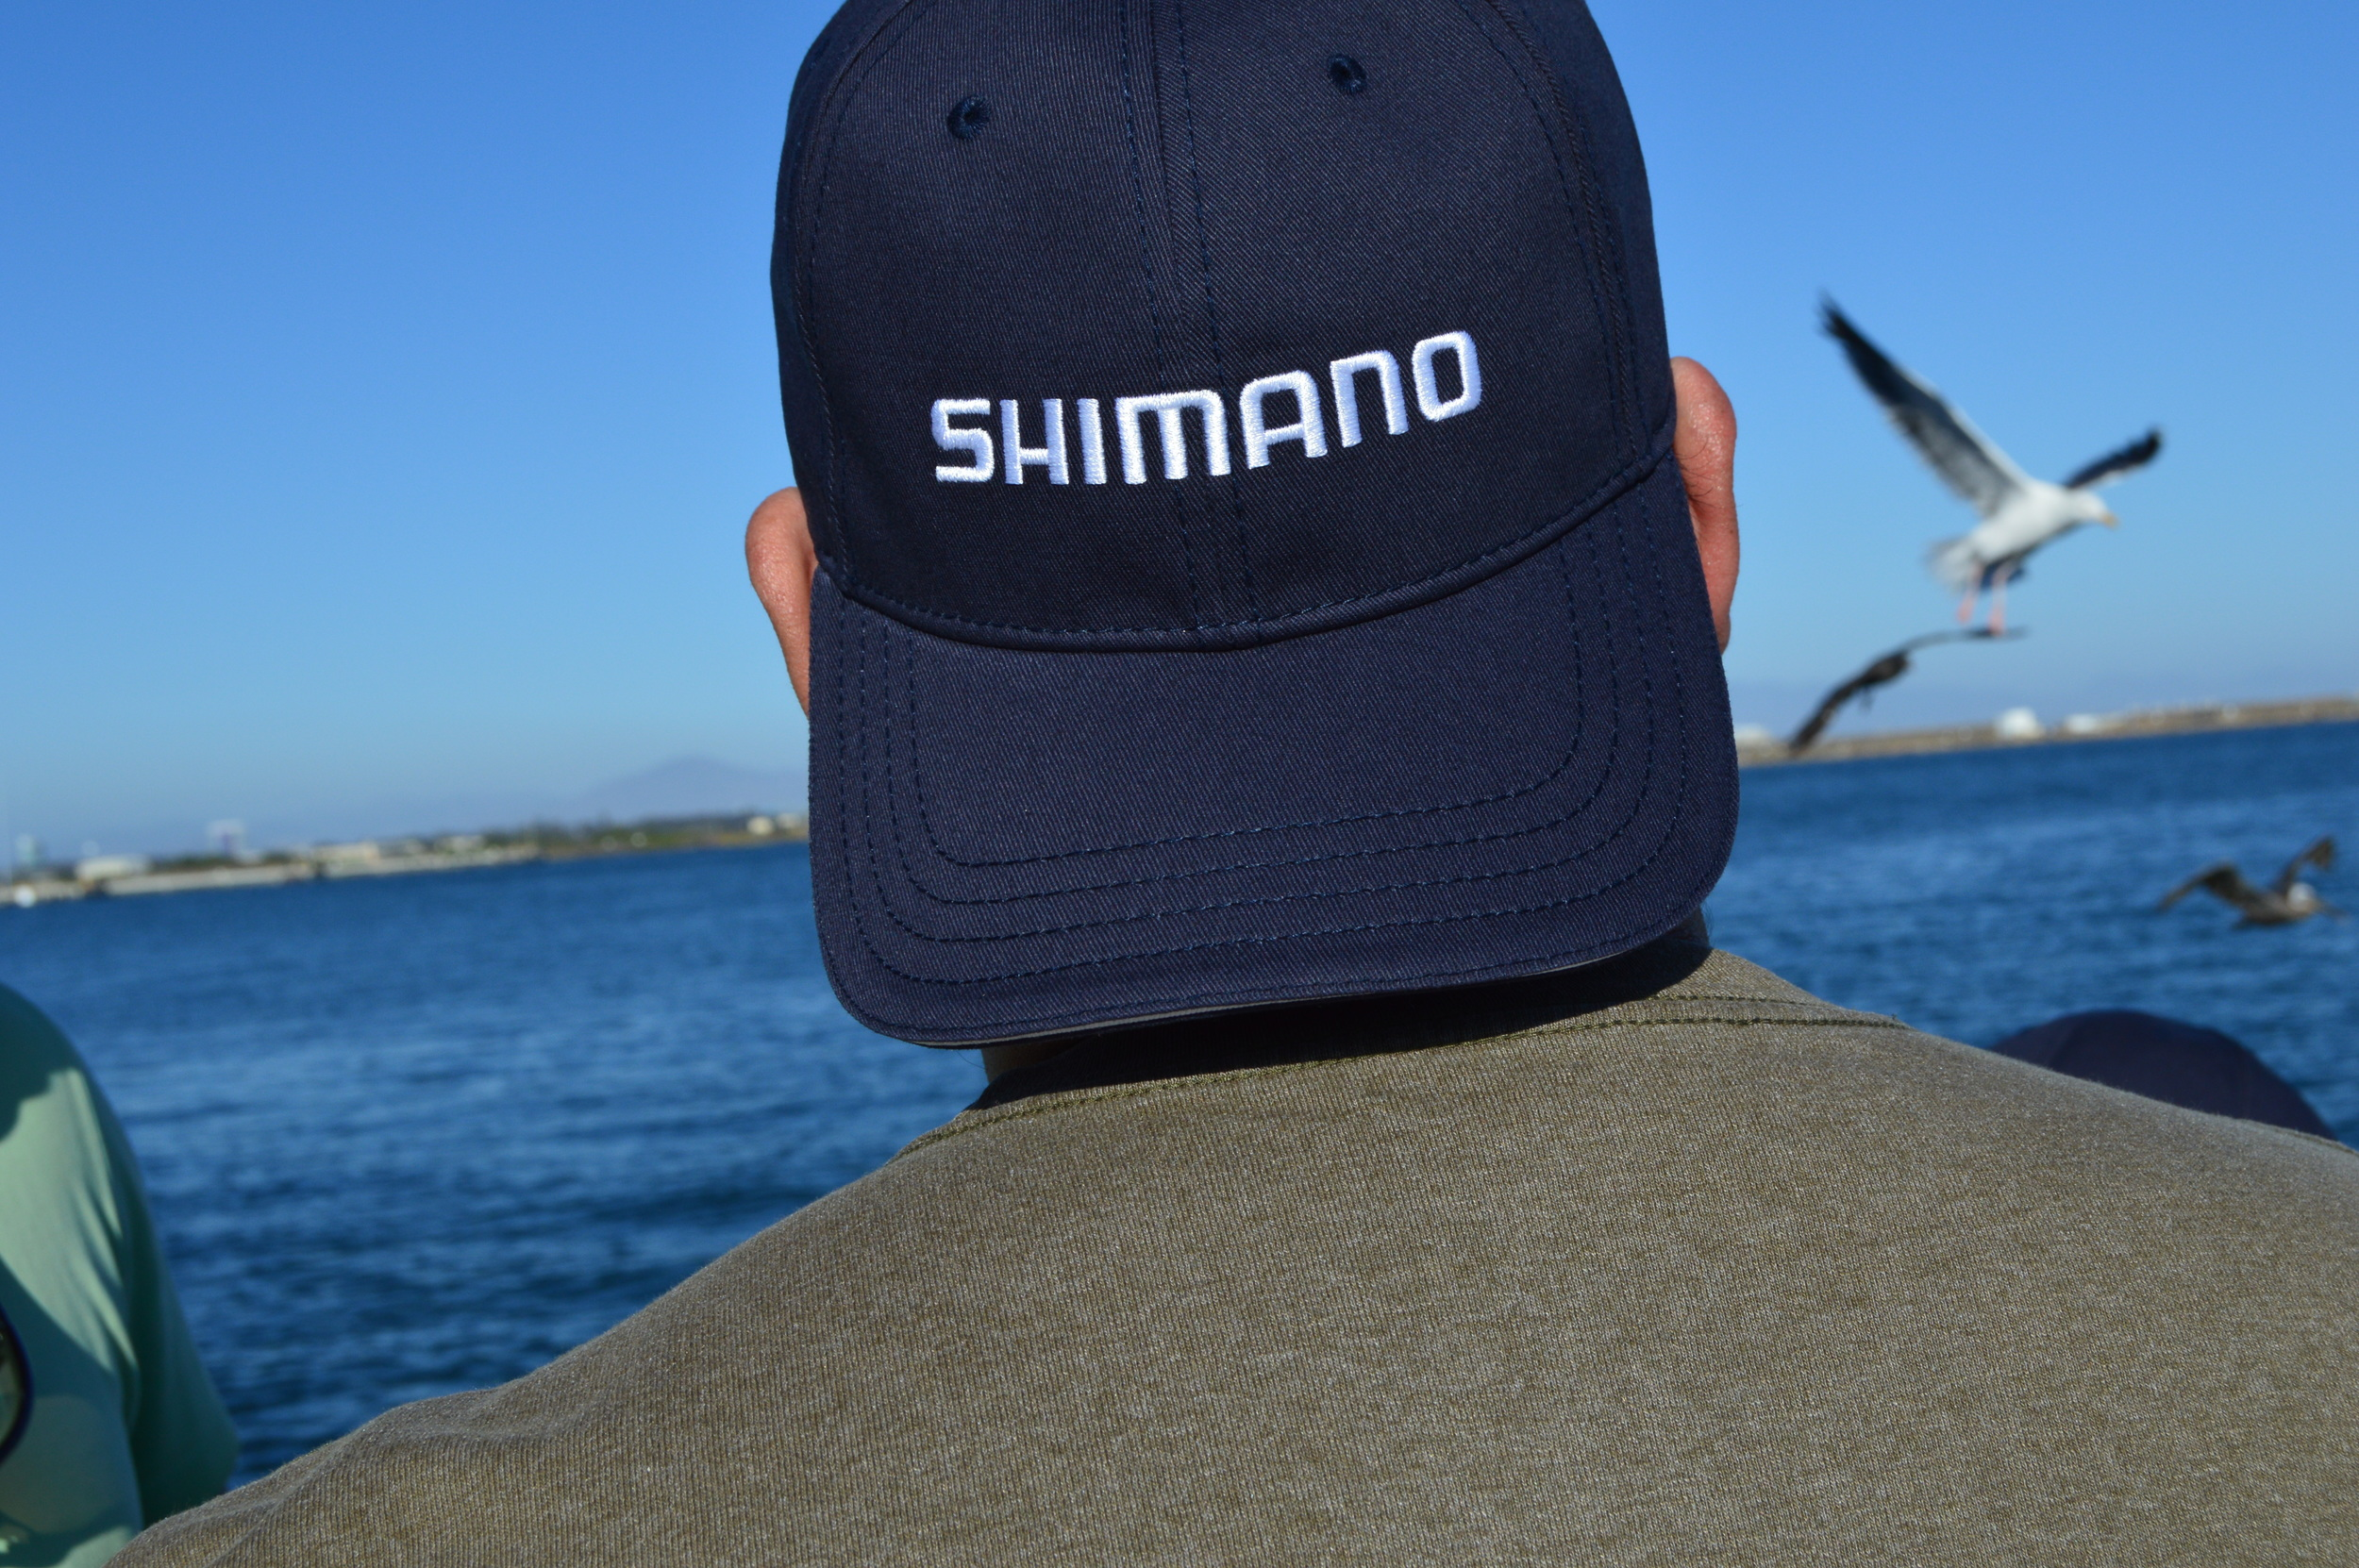 Every angler on the trip received a Shimano hat also!